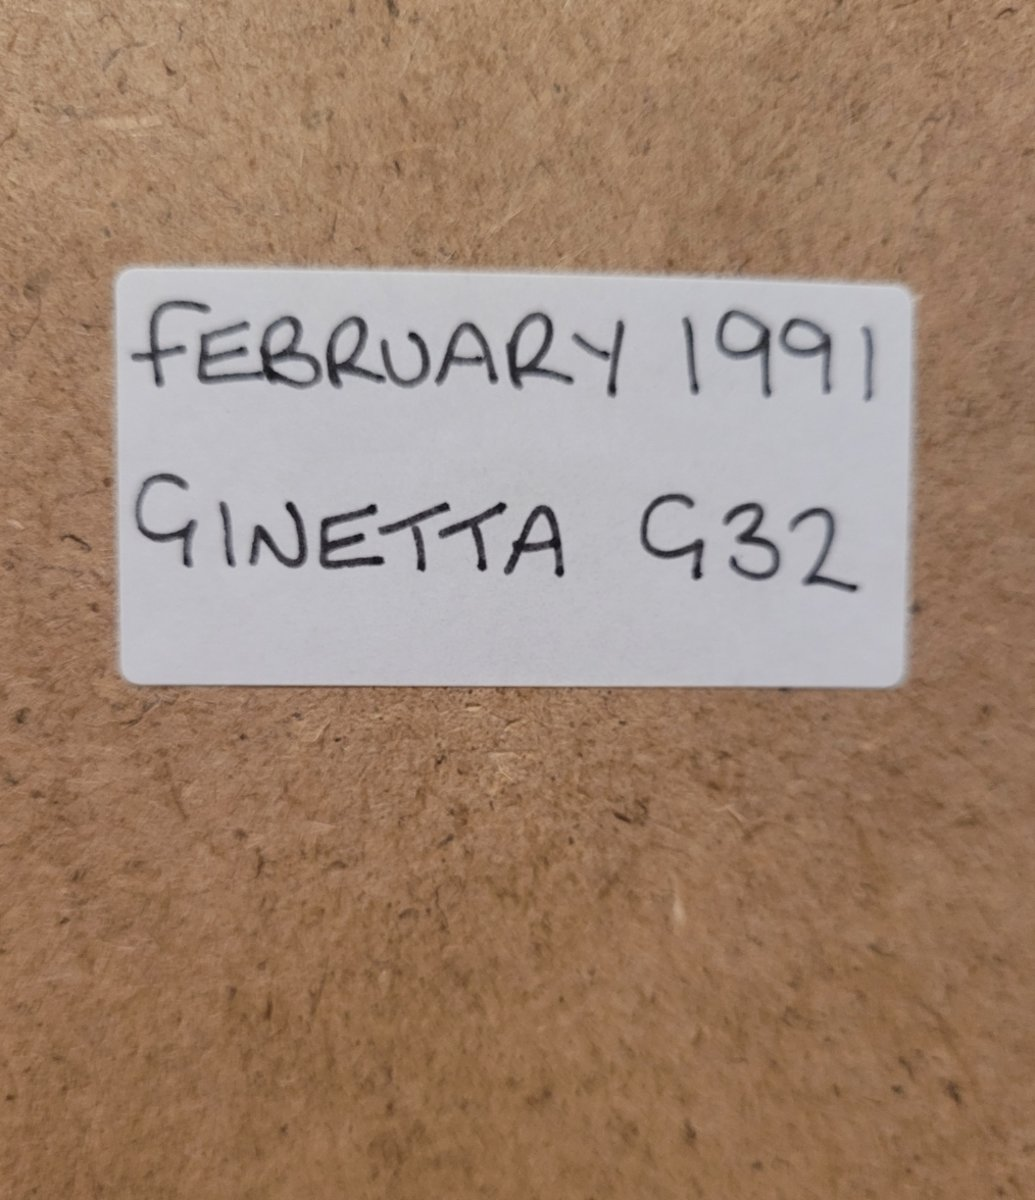 1988 Original 1991 Ginetta G32 Framed Advert For Sale (picture 2 of 3)